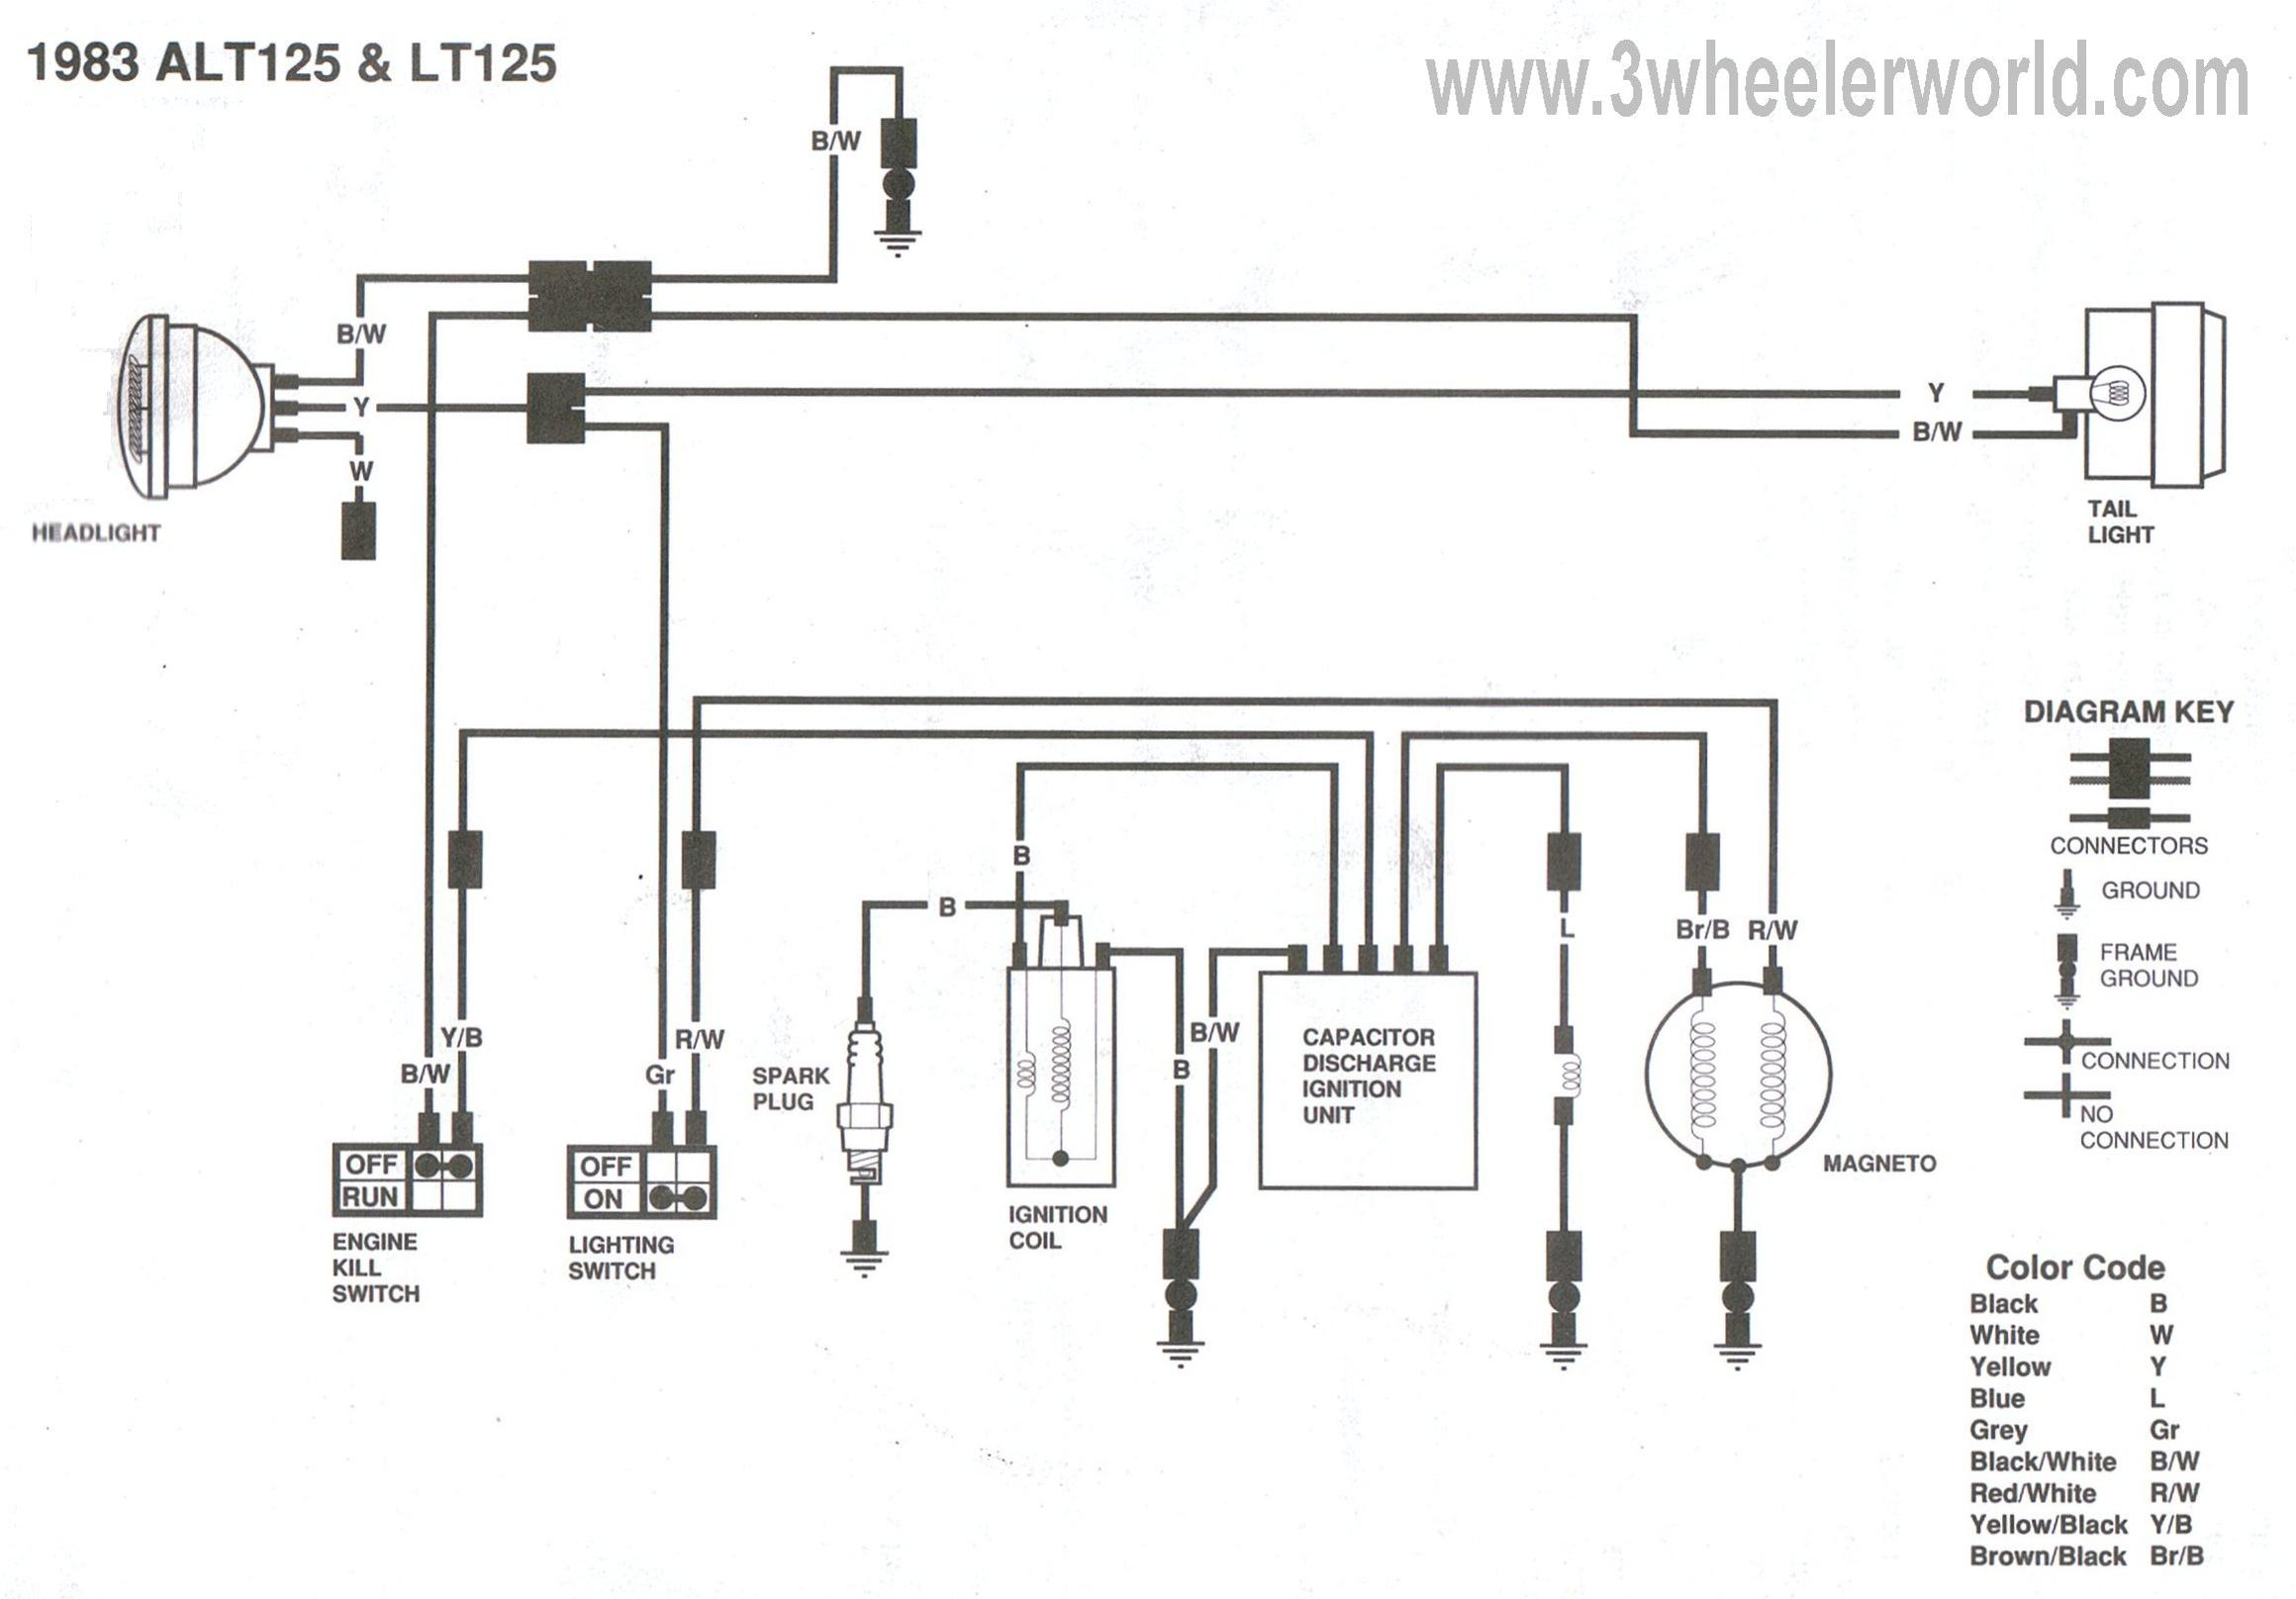 220 Fuse Diagram Wiring For Dryer Schematics 5005800 Brp Evinrude Ignition Switch Kawasaki Bayou Image And Schematic On 1996